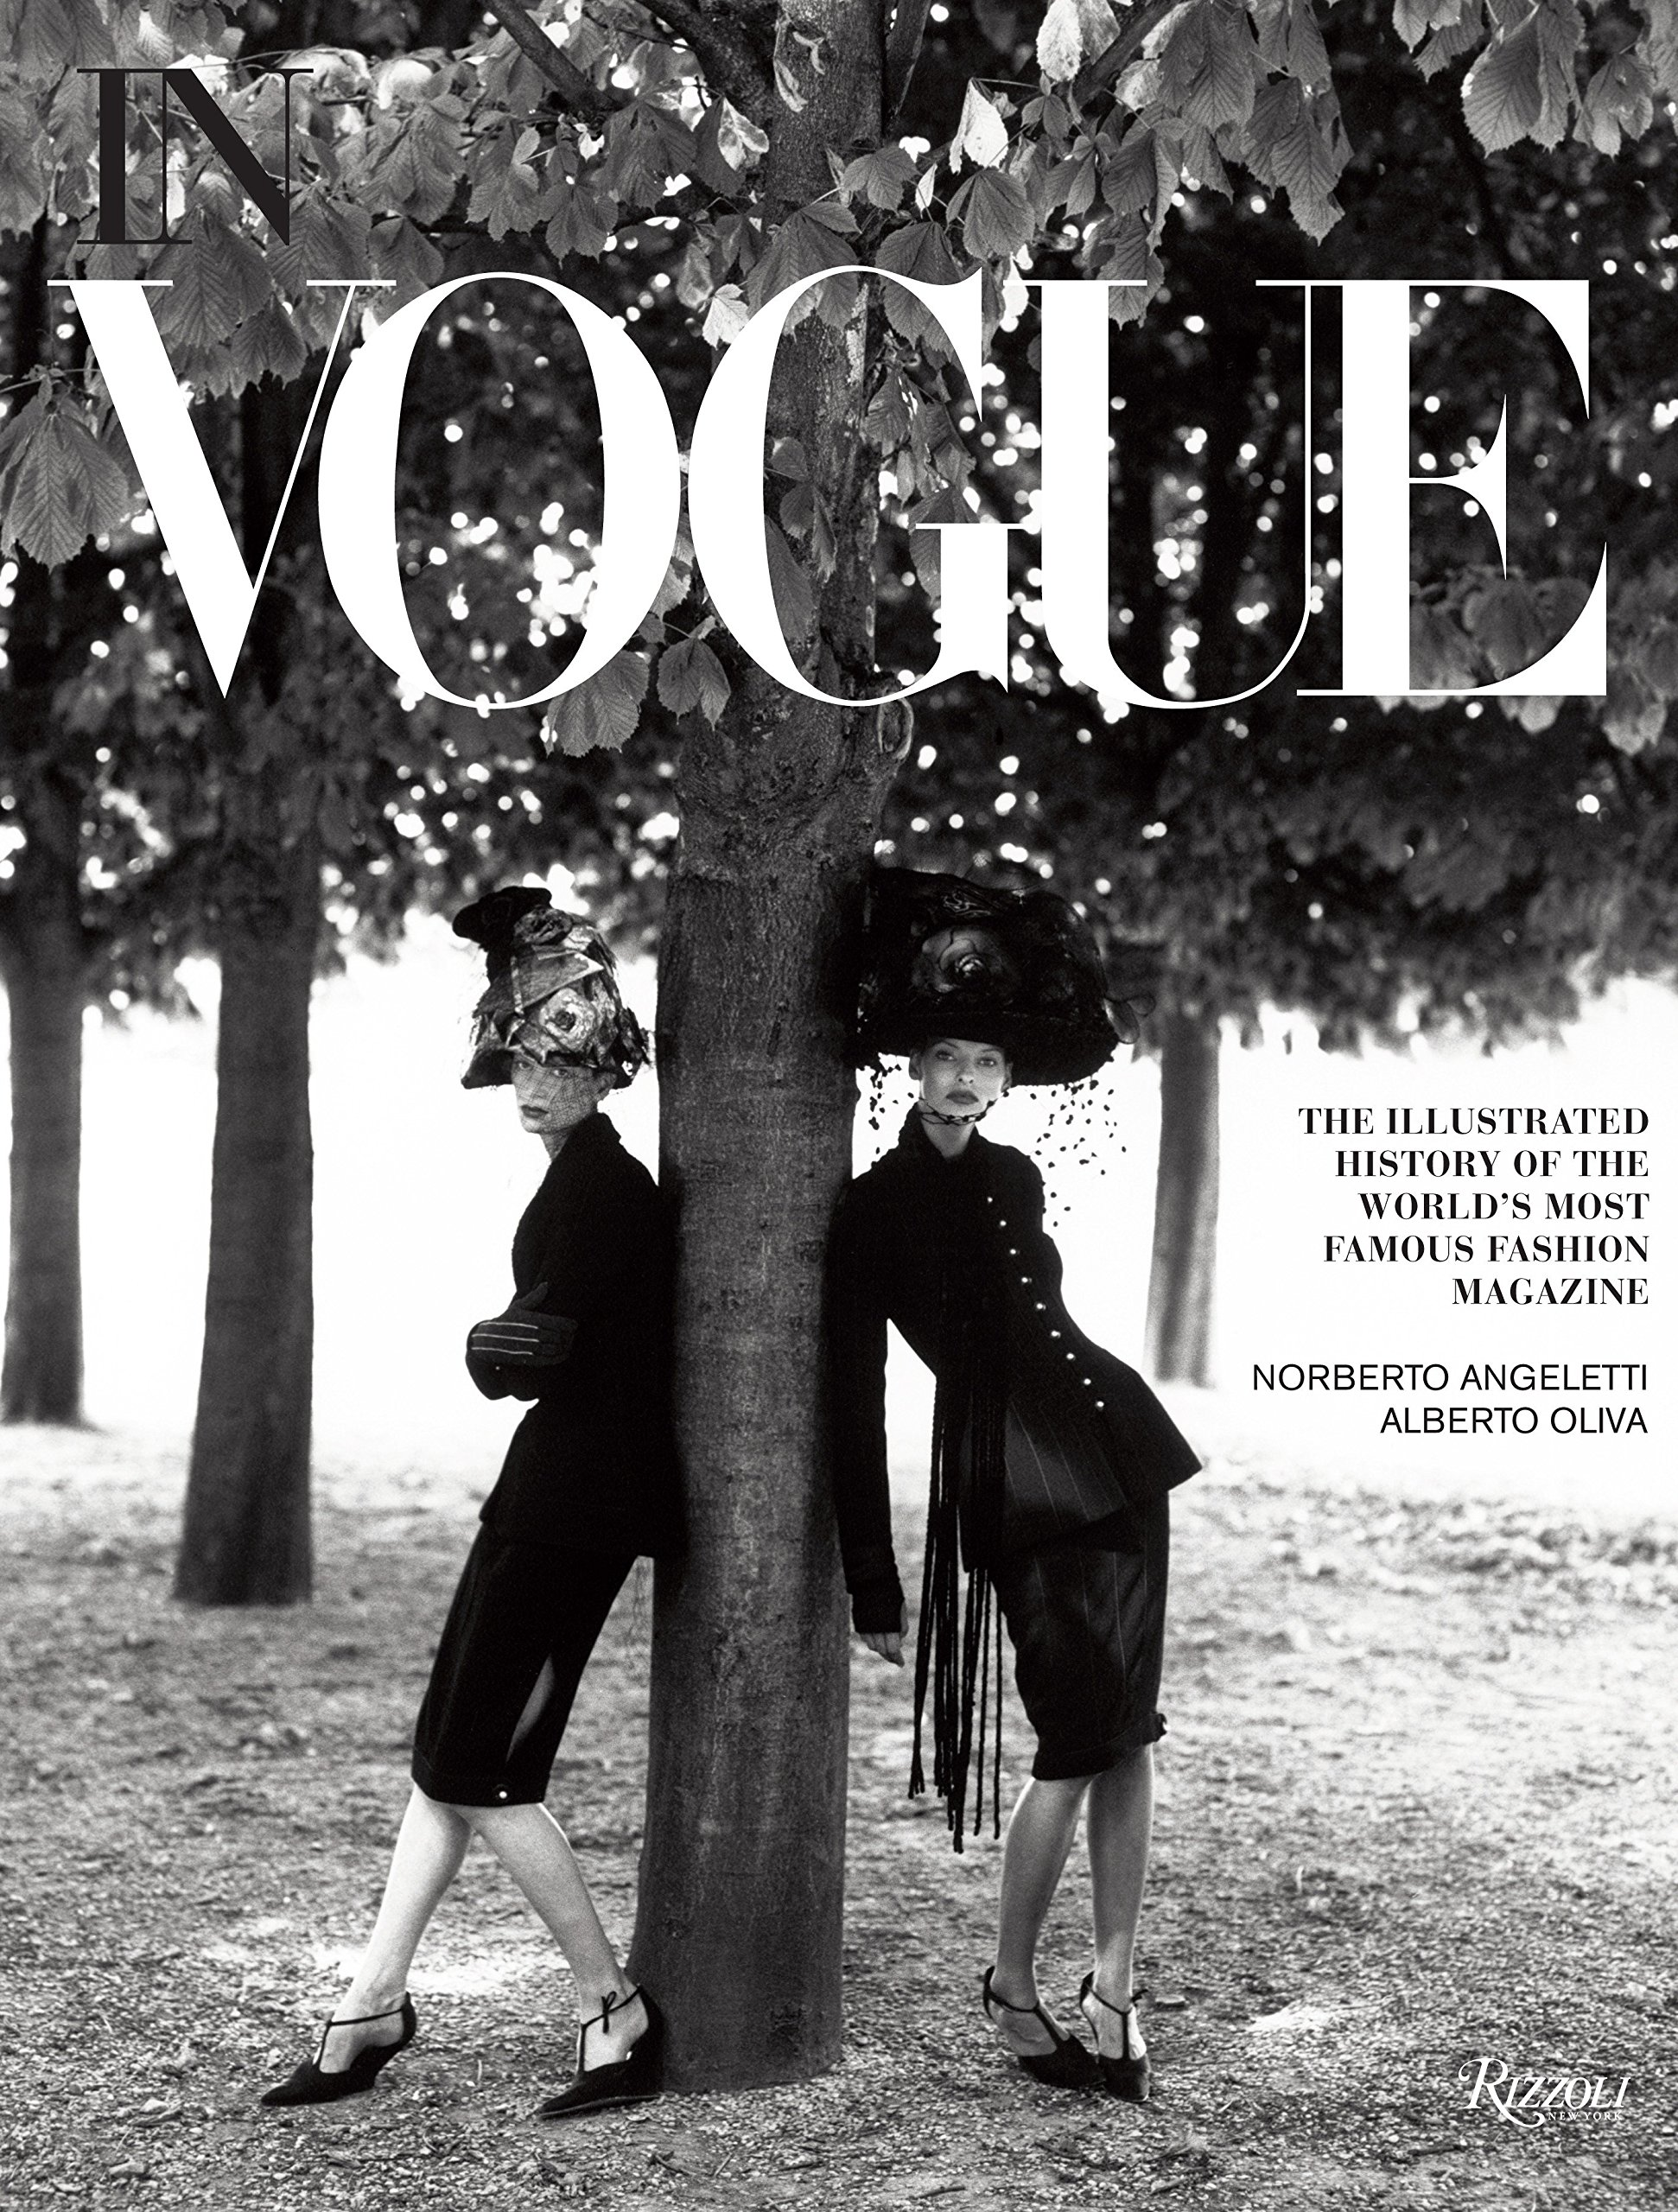 $43.59 • In Vogue By: Alberto Oliva, Noberto Angeletti